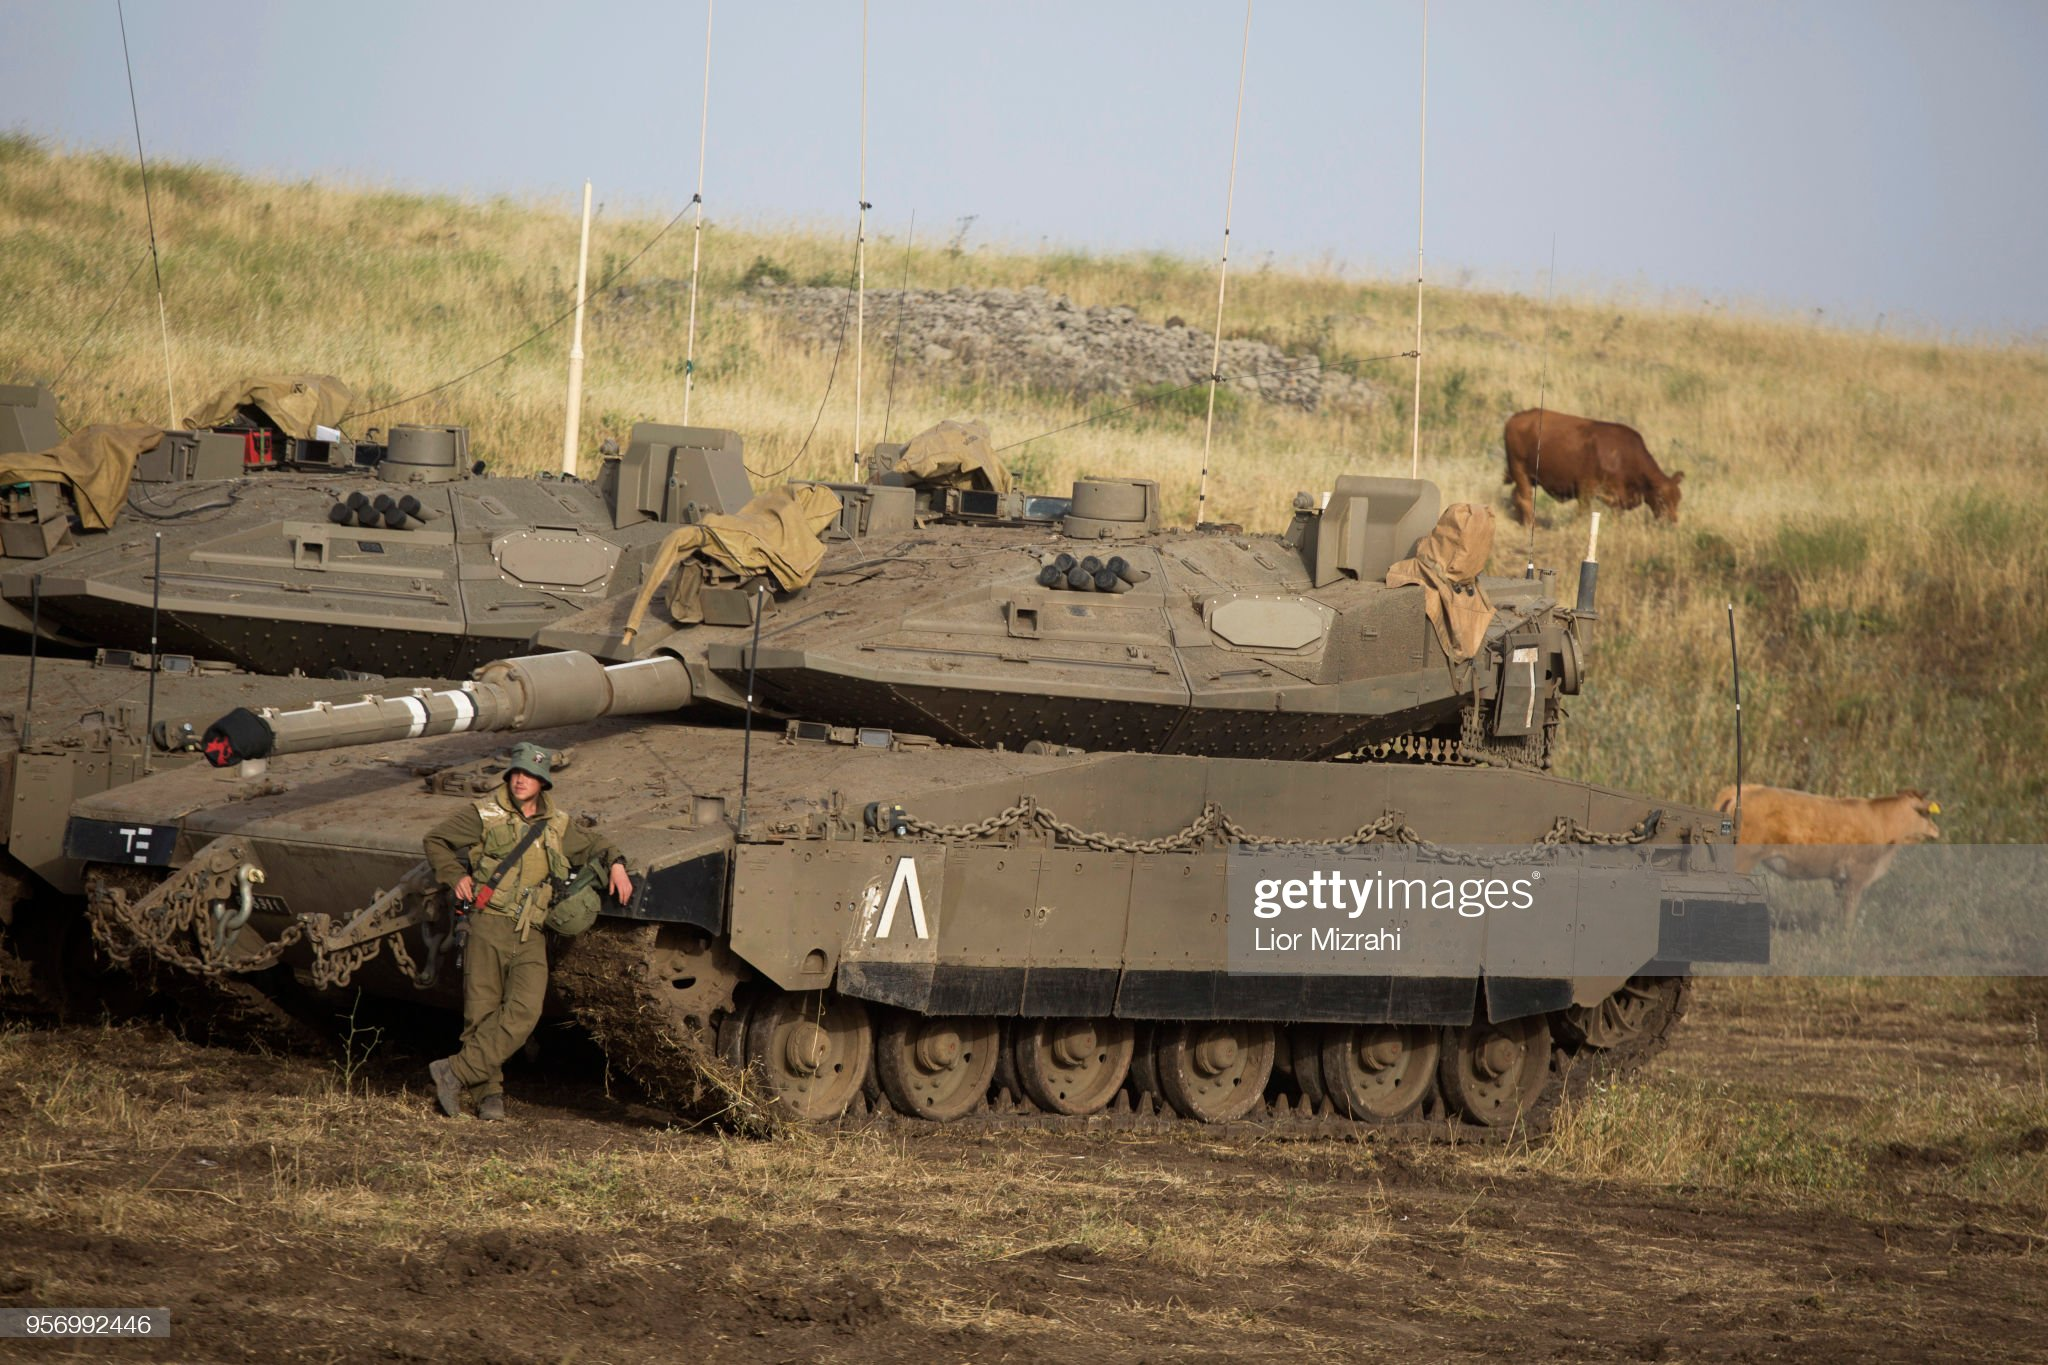 https://media.gettyimages.com/photos/an-israeli-soldier-is-seen-next-to-merkava-tanks-deployed-near-the-picture-id956992446?s=2048x2048